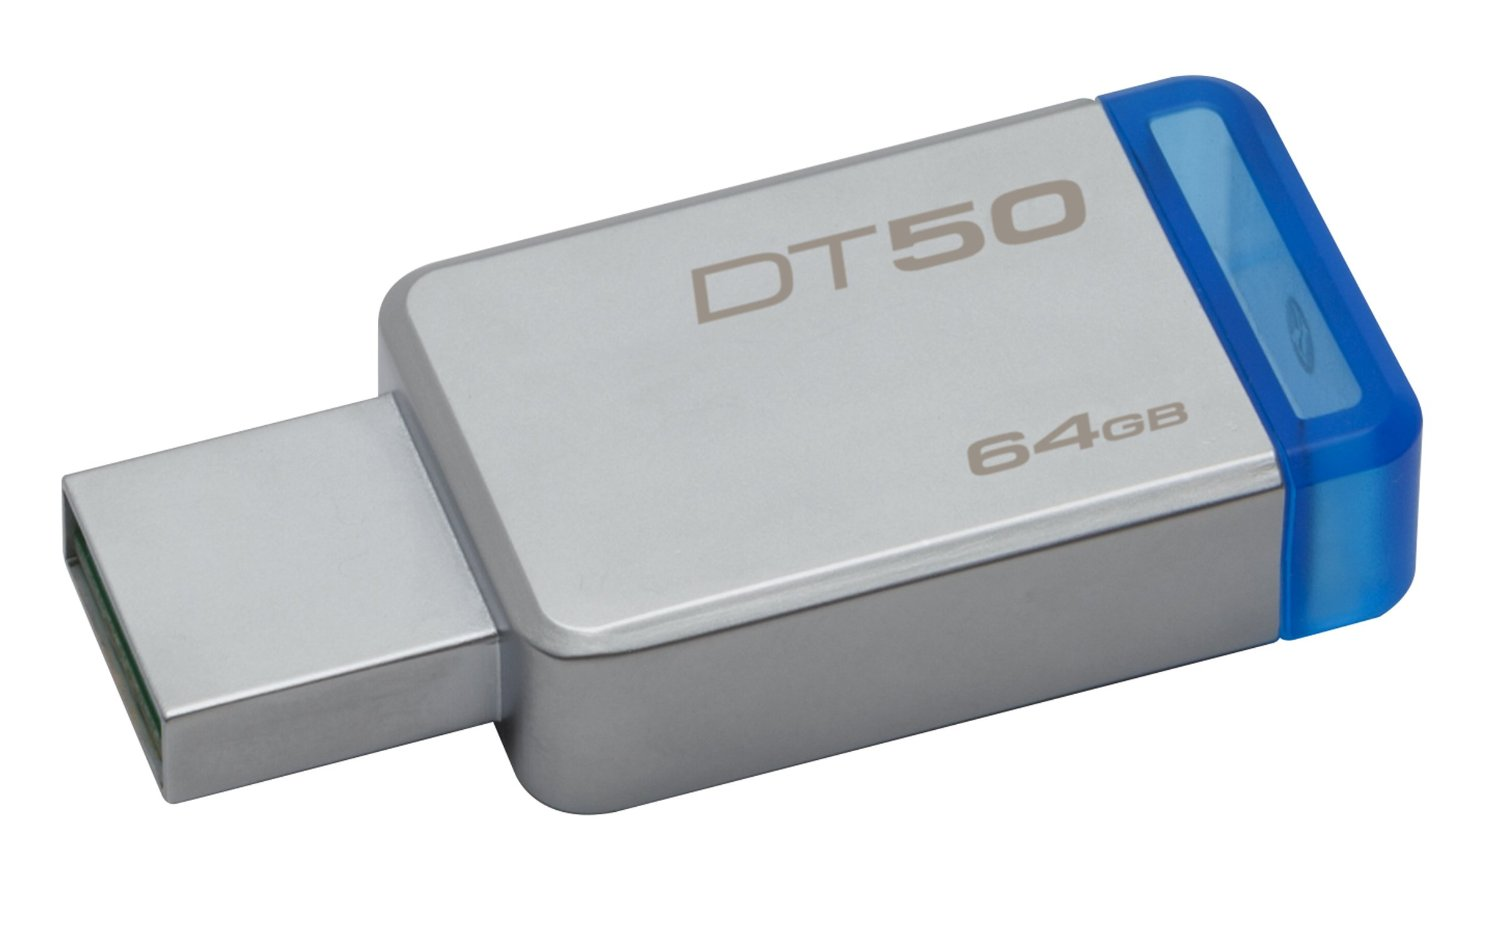 Flash Drive Kingston Data Traveler 50 64GB USB 3.0 Metal/Blue